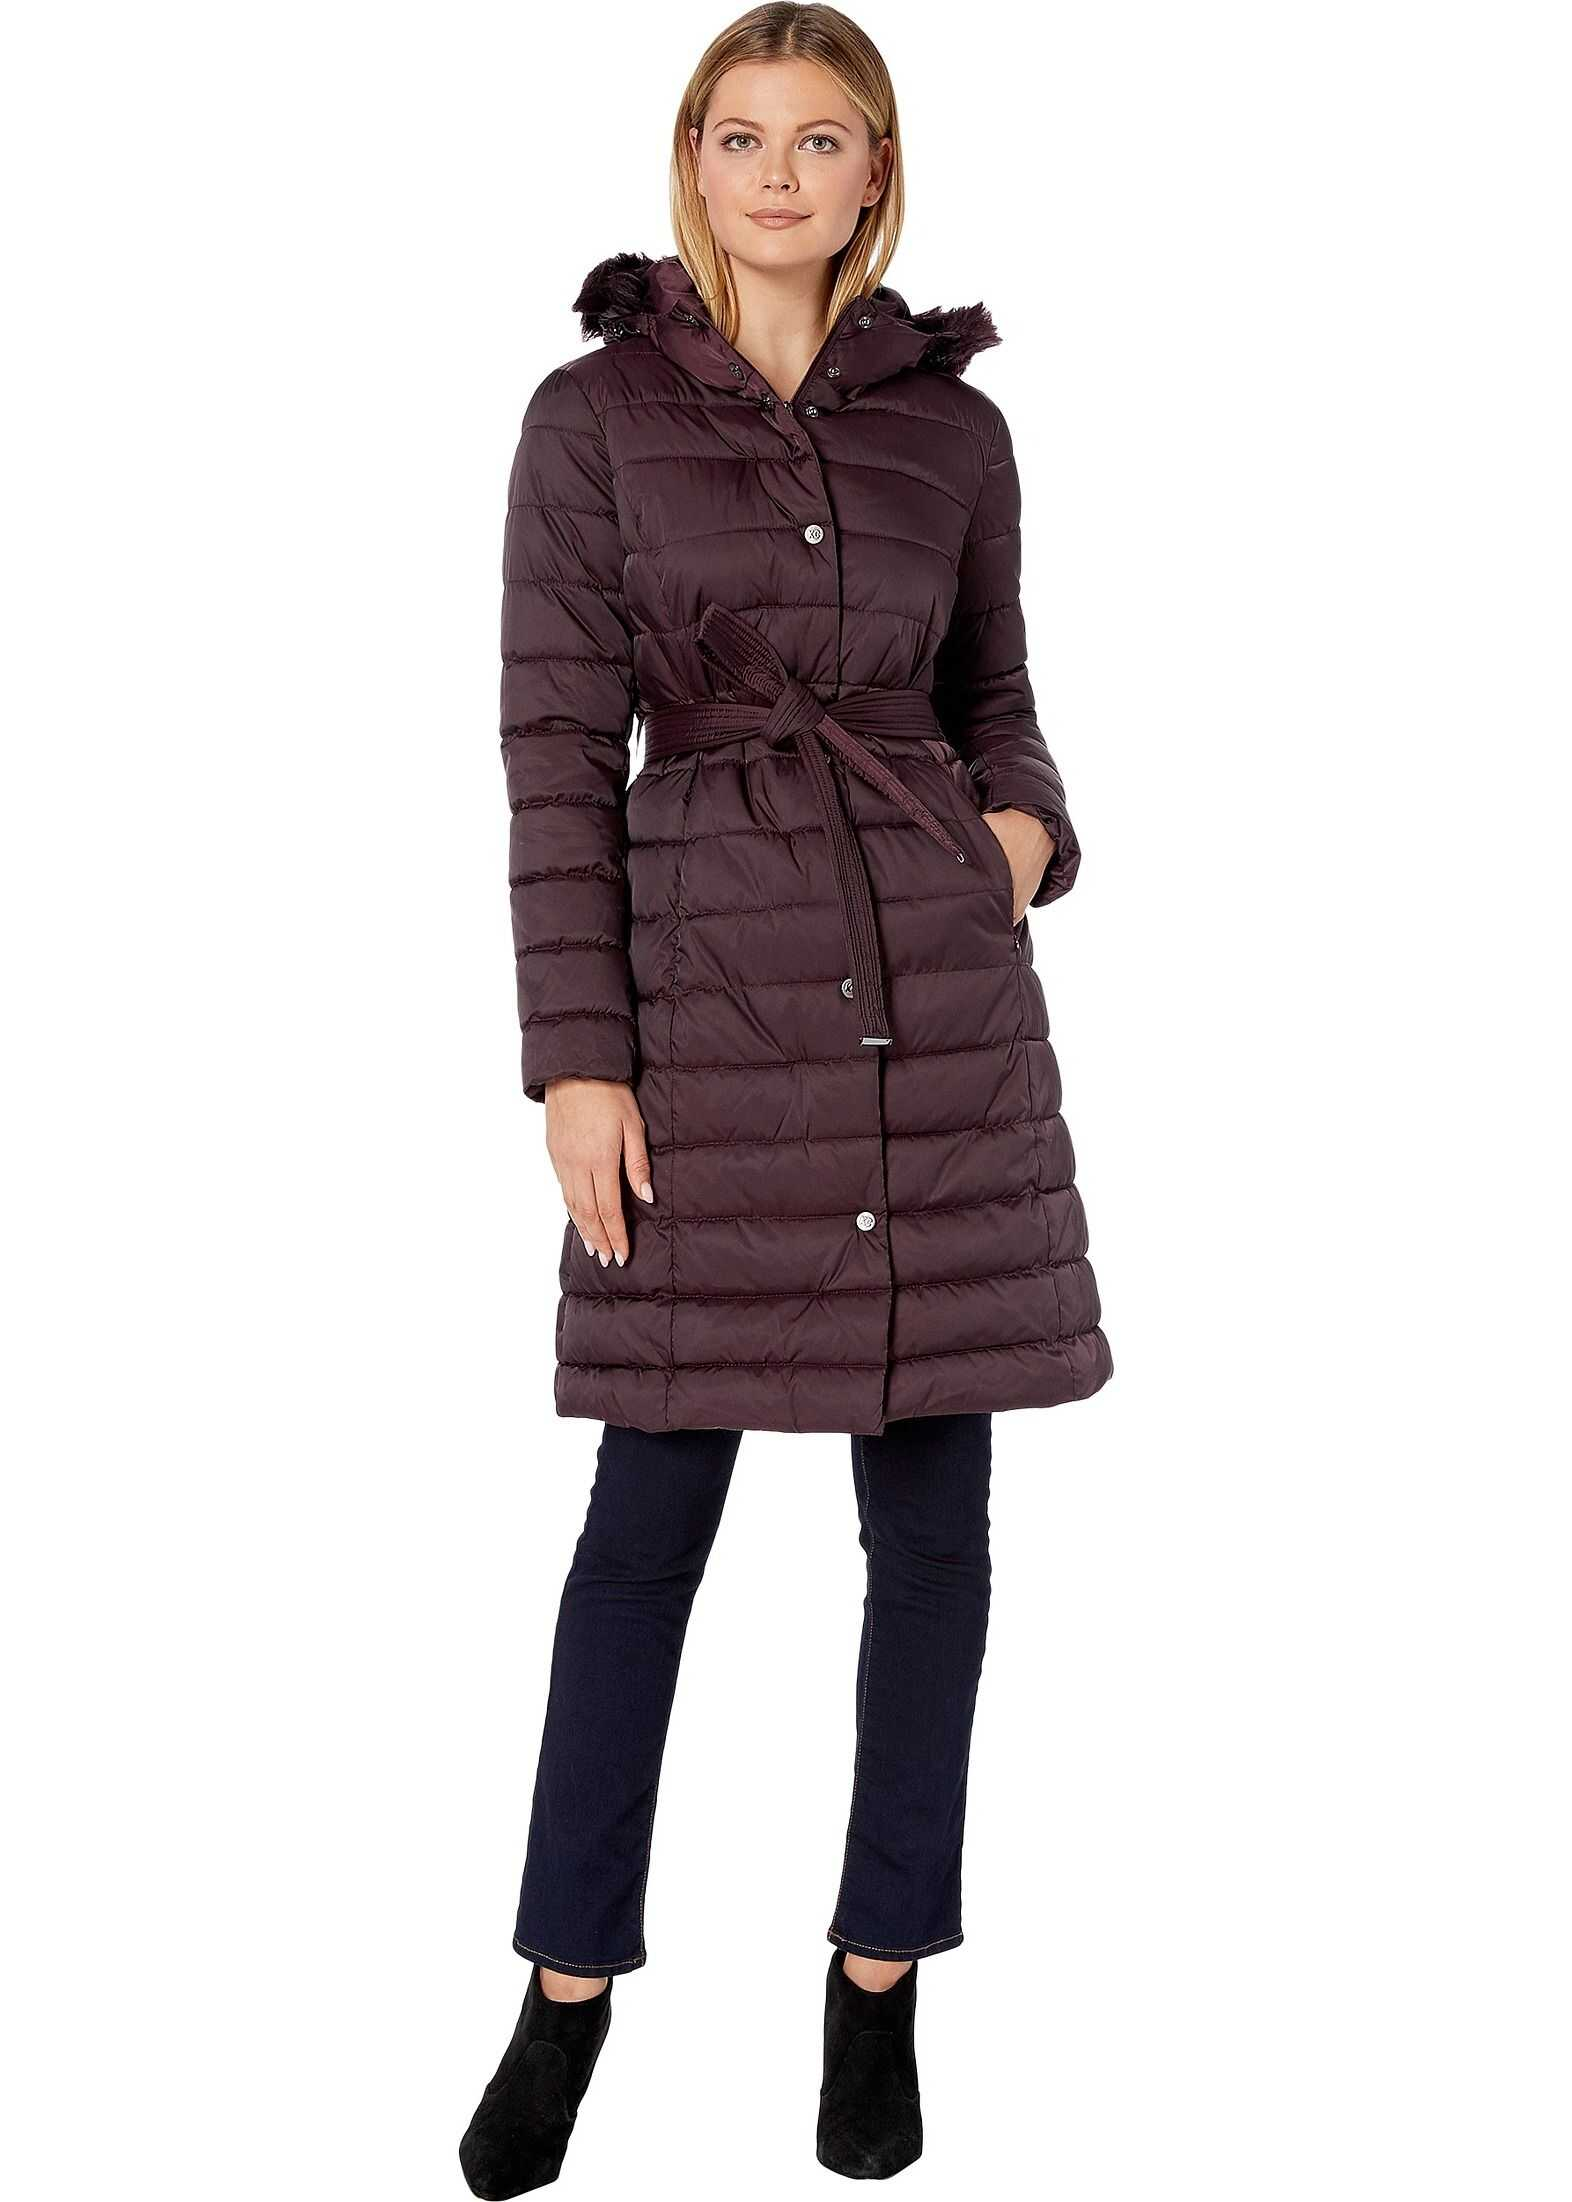 Kenneth Cole New York Matte Satin Belted Puffer w/ Faux Fur Trim Rum Raisin